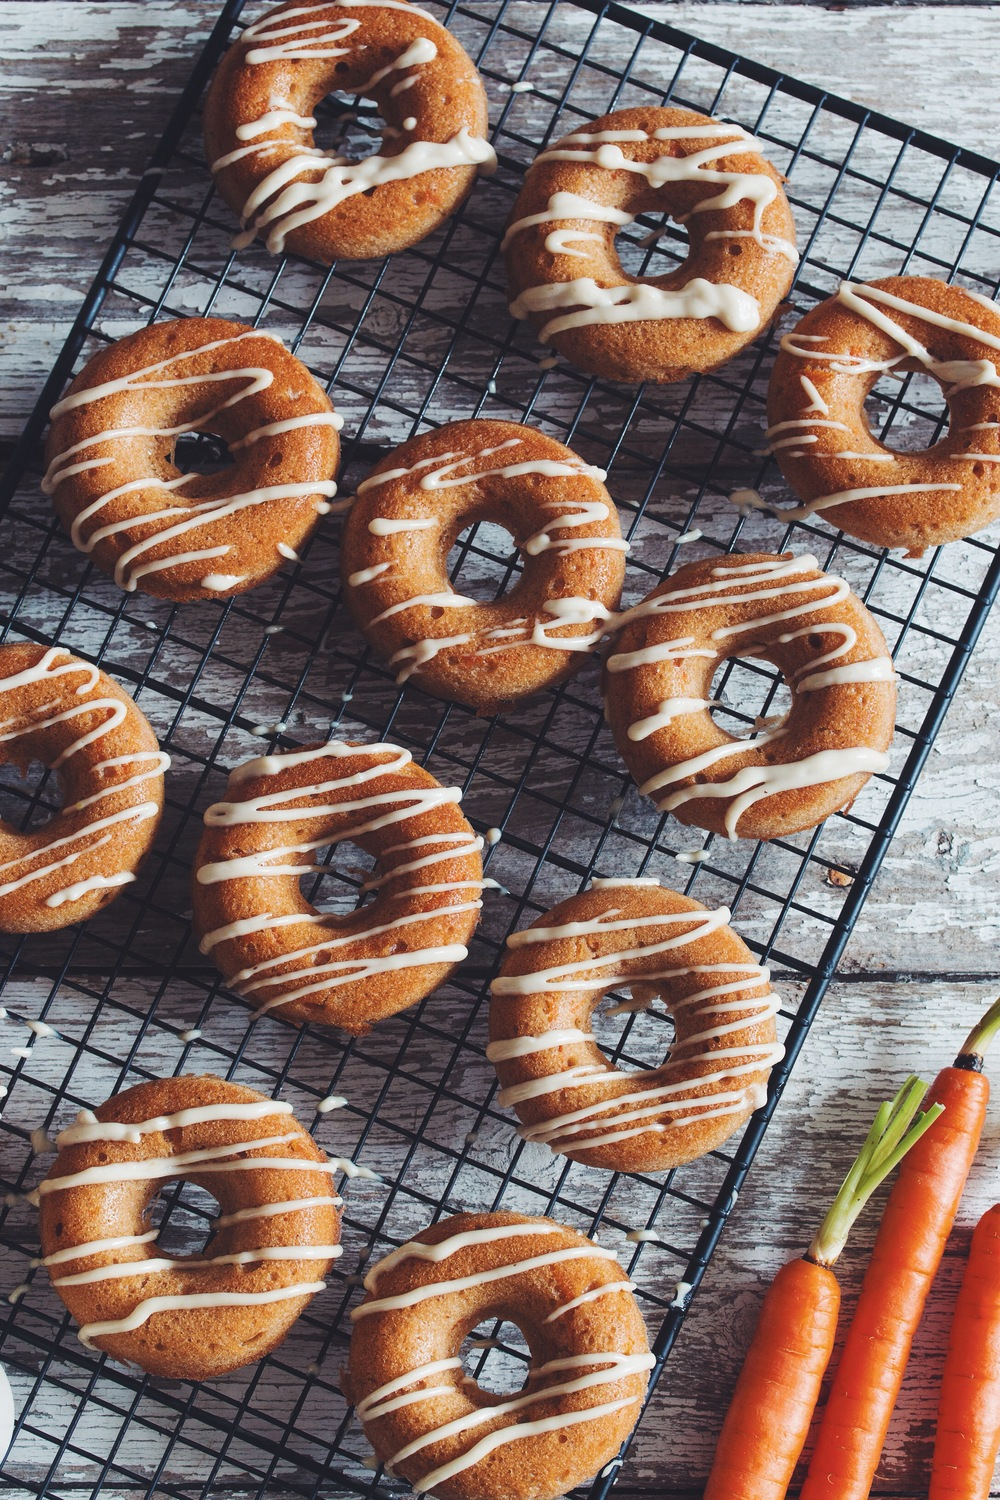 Vegan Carrot Cake Doughnuts With Lemon Cream Glaze Recipe On Hotforfoodblog Com